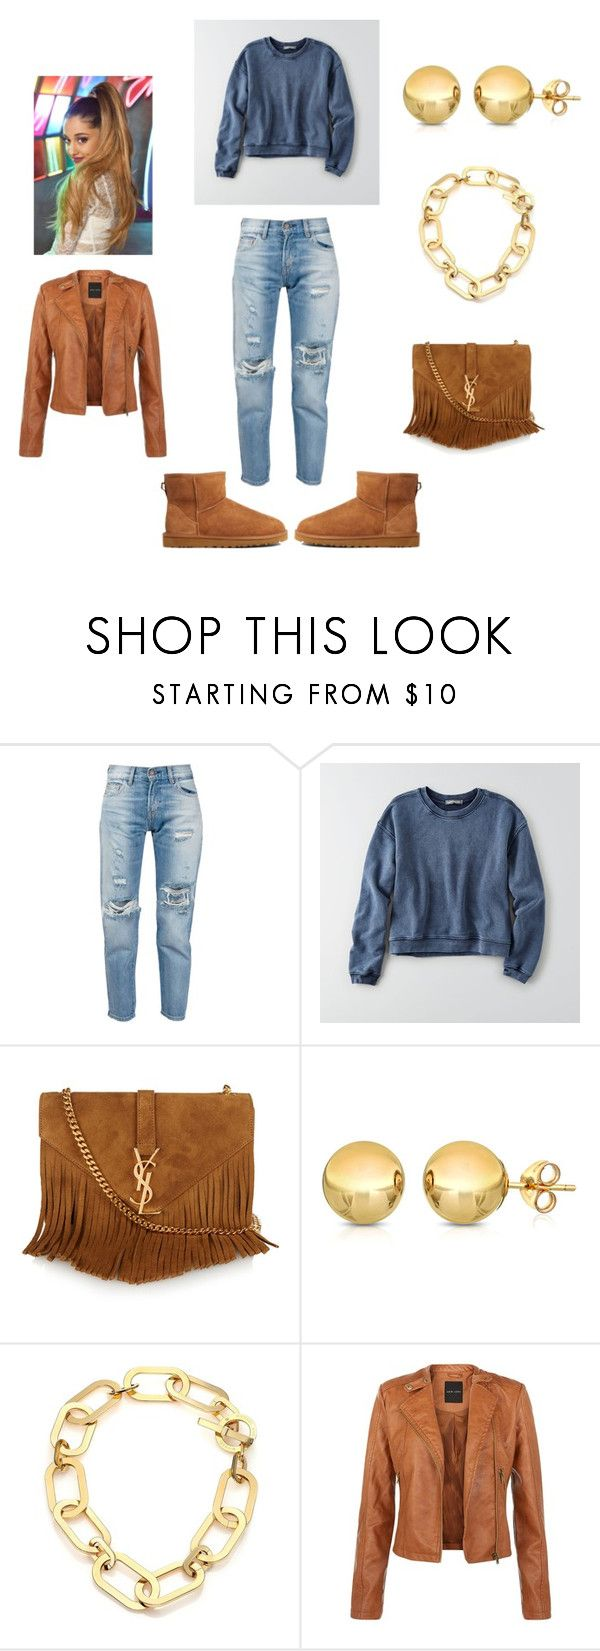 """"""""""" by cockystyles1 ❤ liked on Polyvore featuring Levi's, American Eagle Outfitters, Yves Saint Laurent, Sevil Designs, Michael Kors and UGG Australia"""